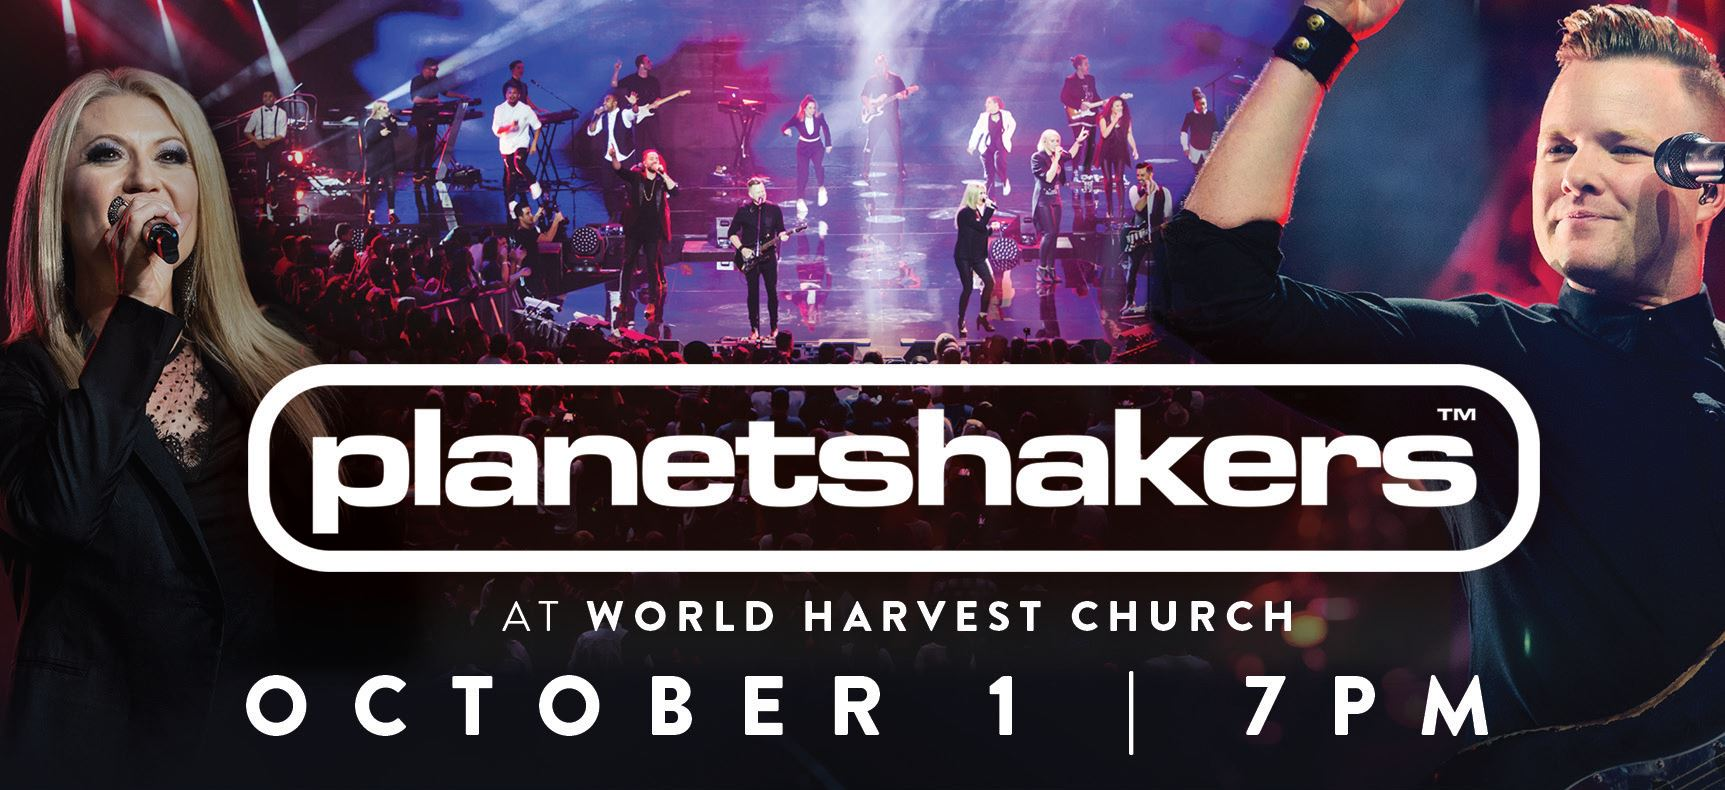 Planetshakers | At World Harvest Church | Sunday, October 1, at 7pm